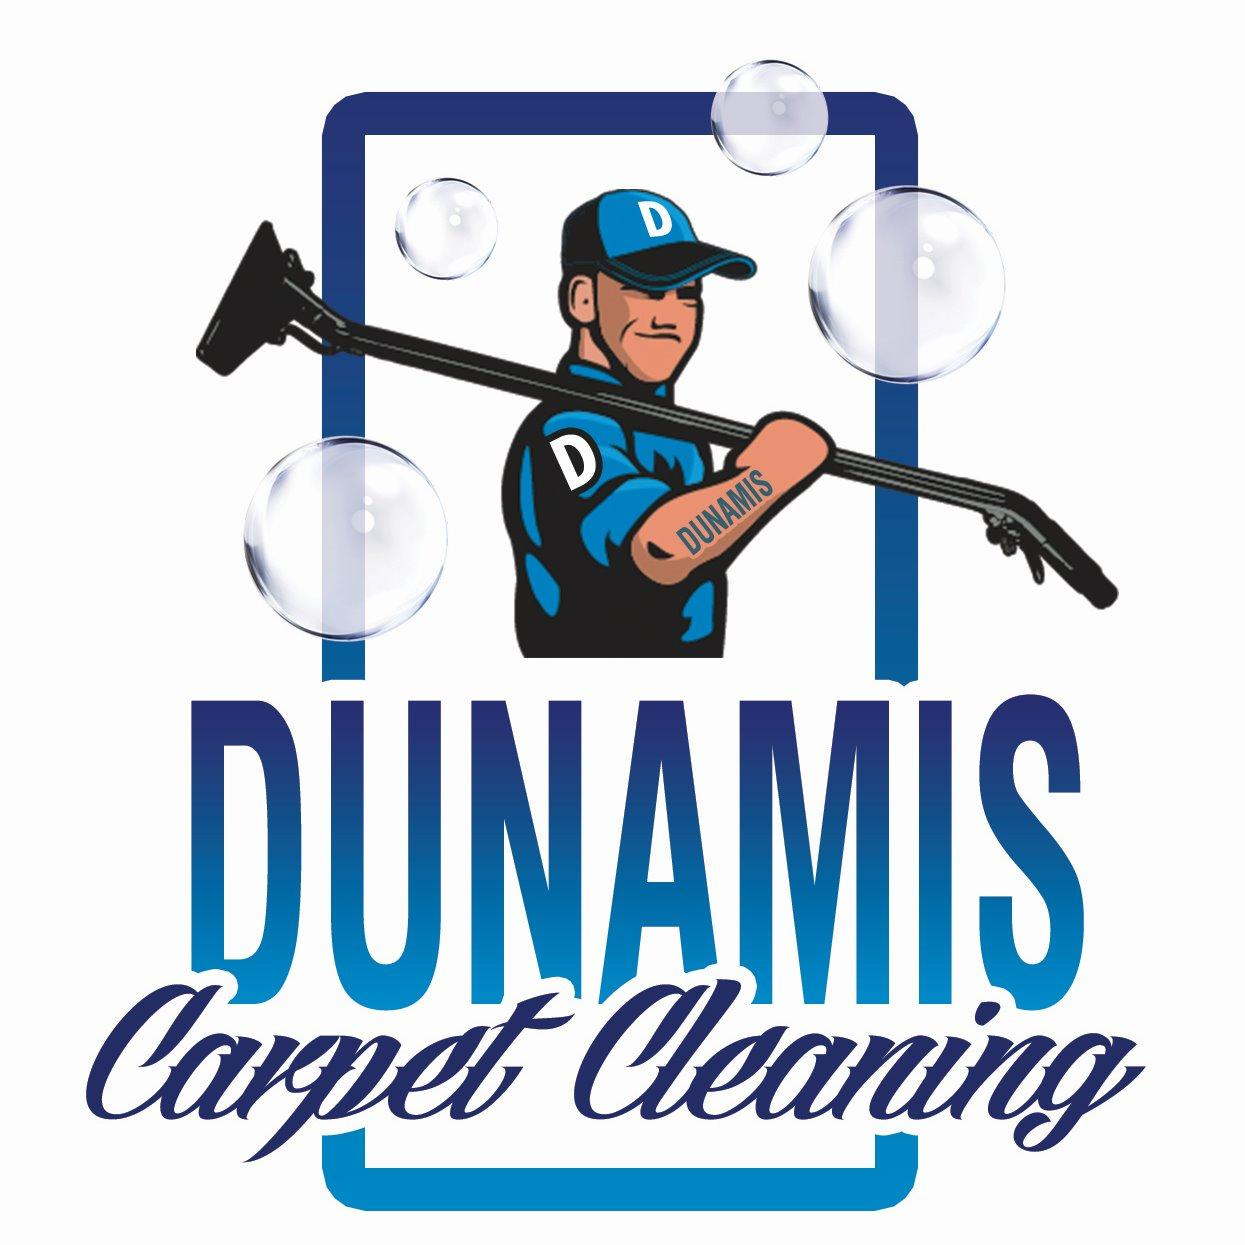 Dunamis Carpet Cleaning Galloway New Jersey Nj